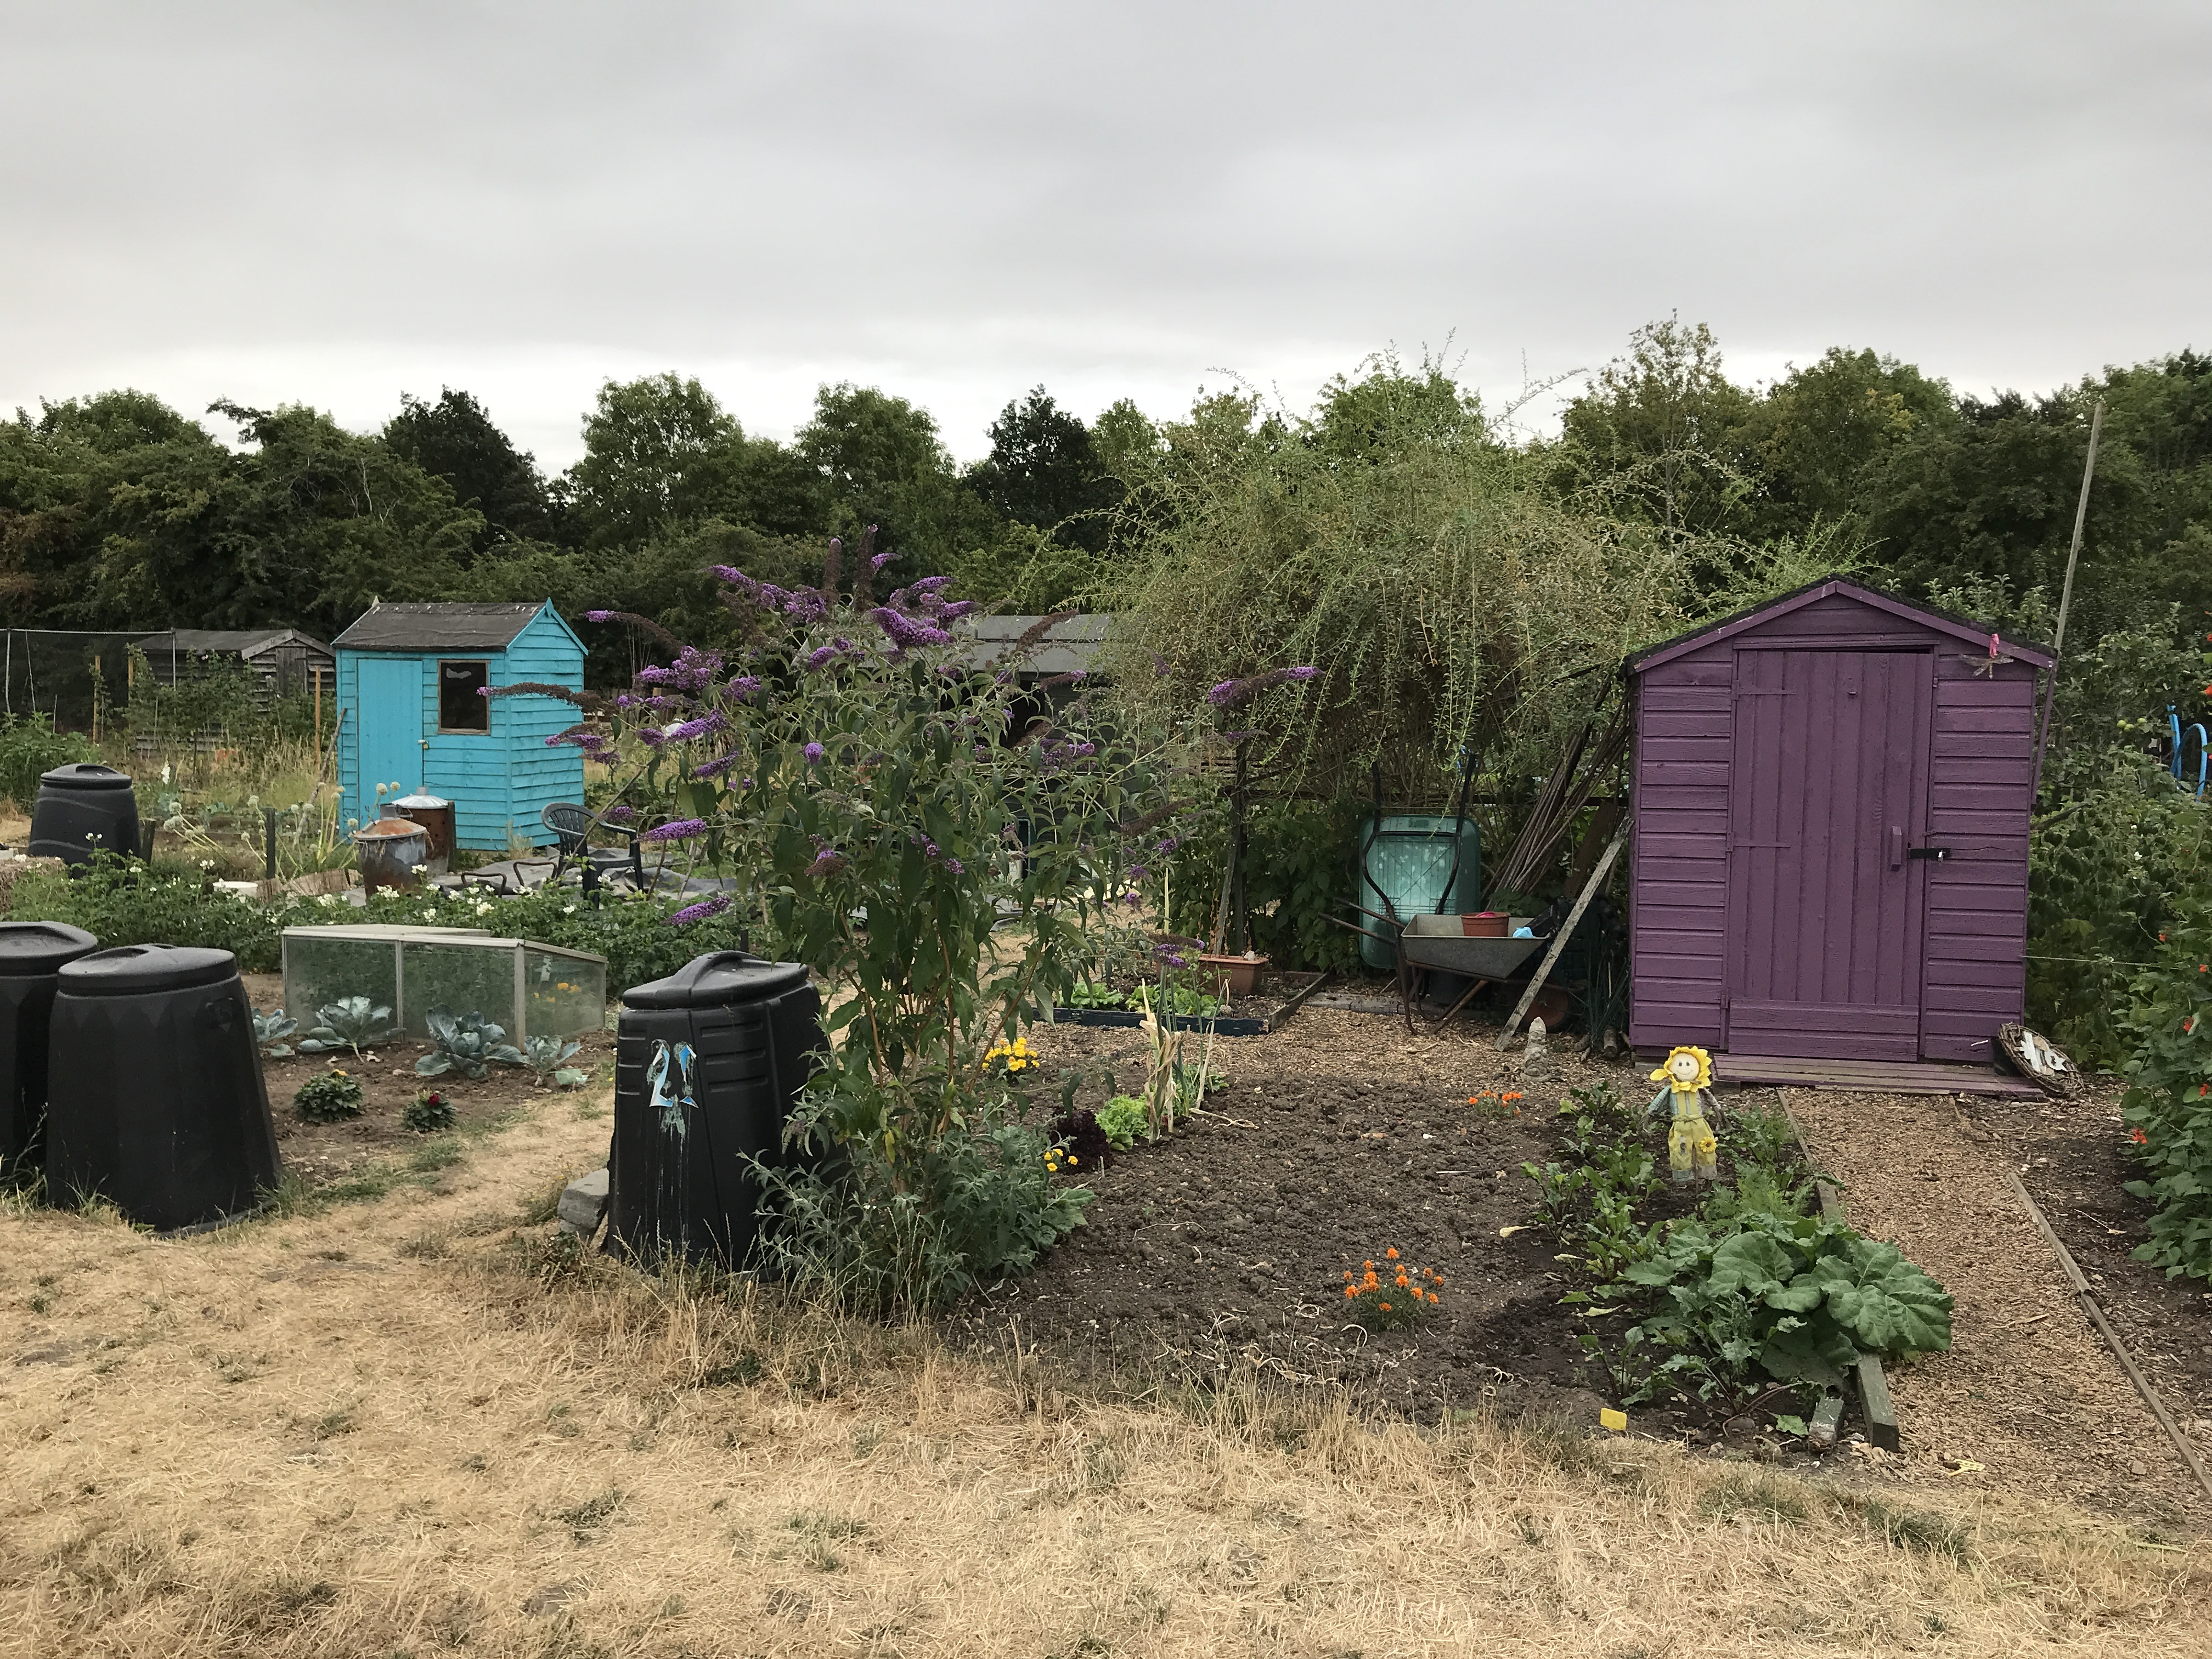 Sheds at the nearby Foster Road allotments.